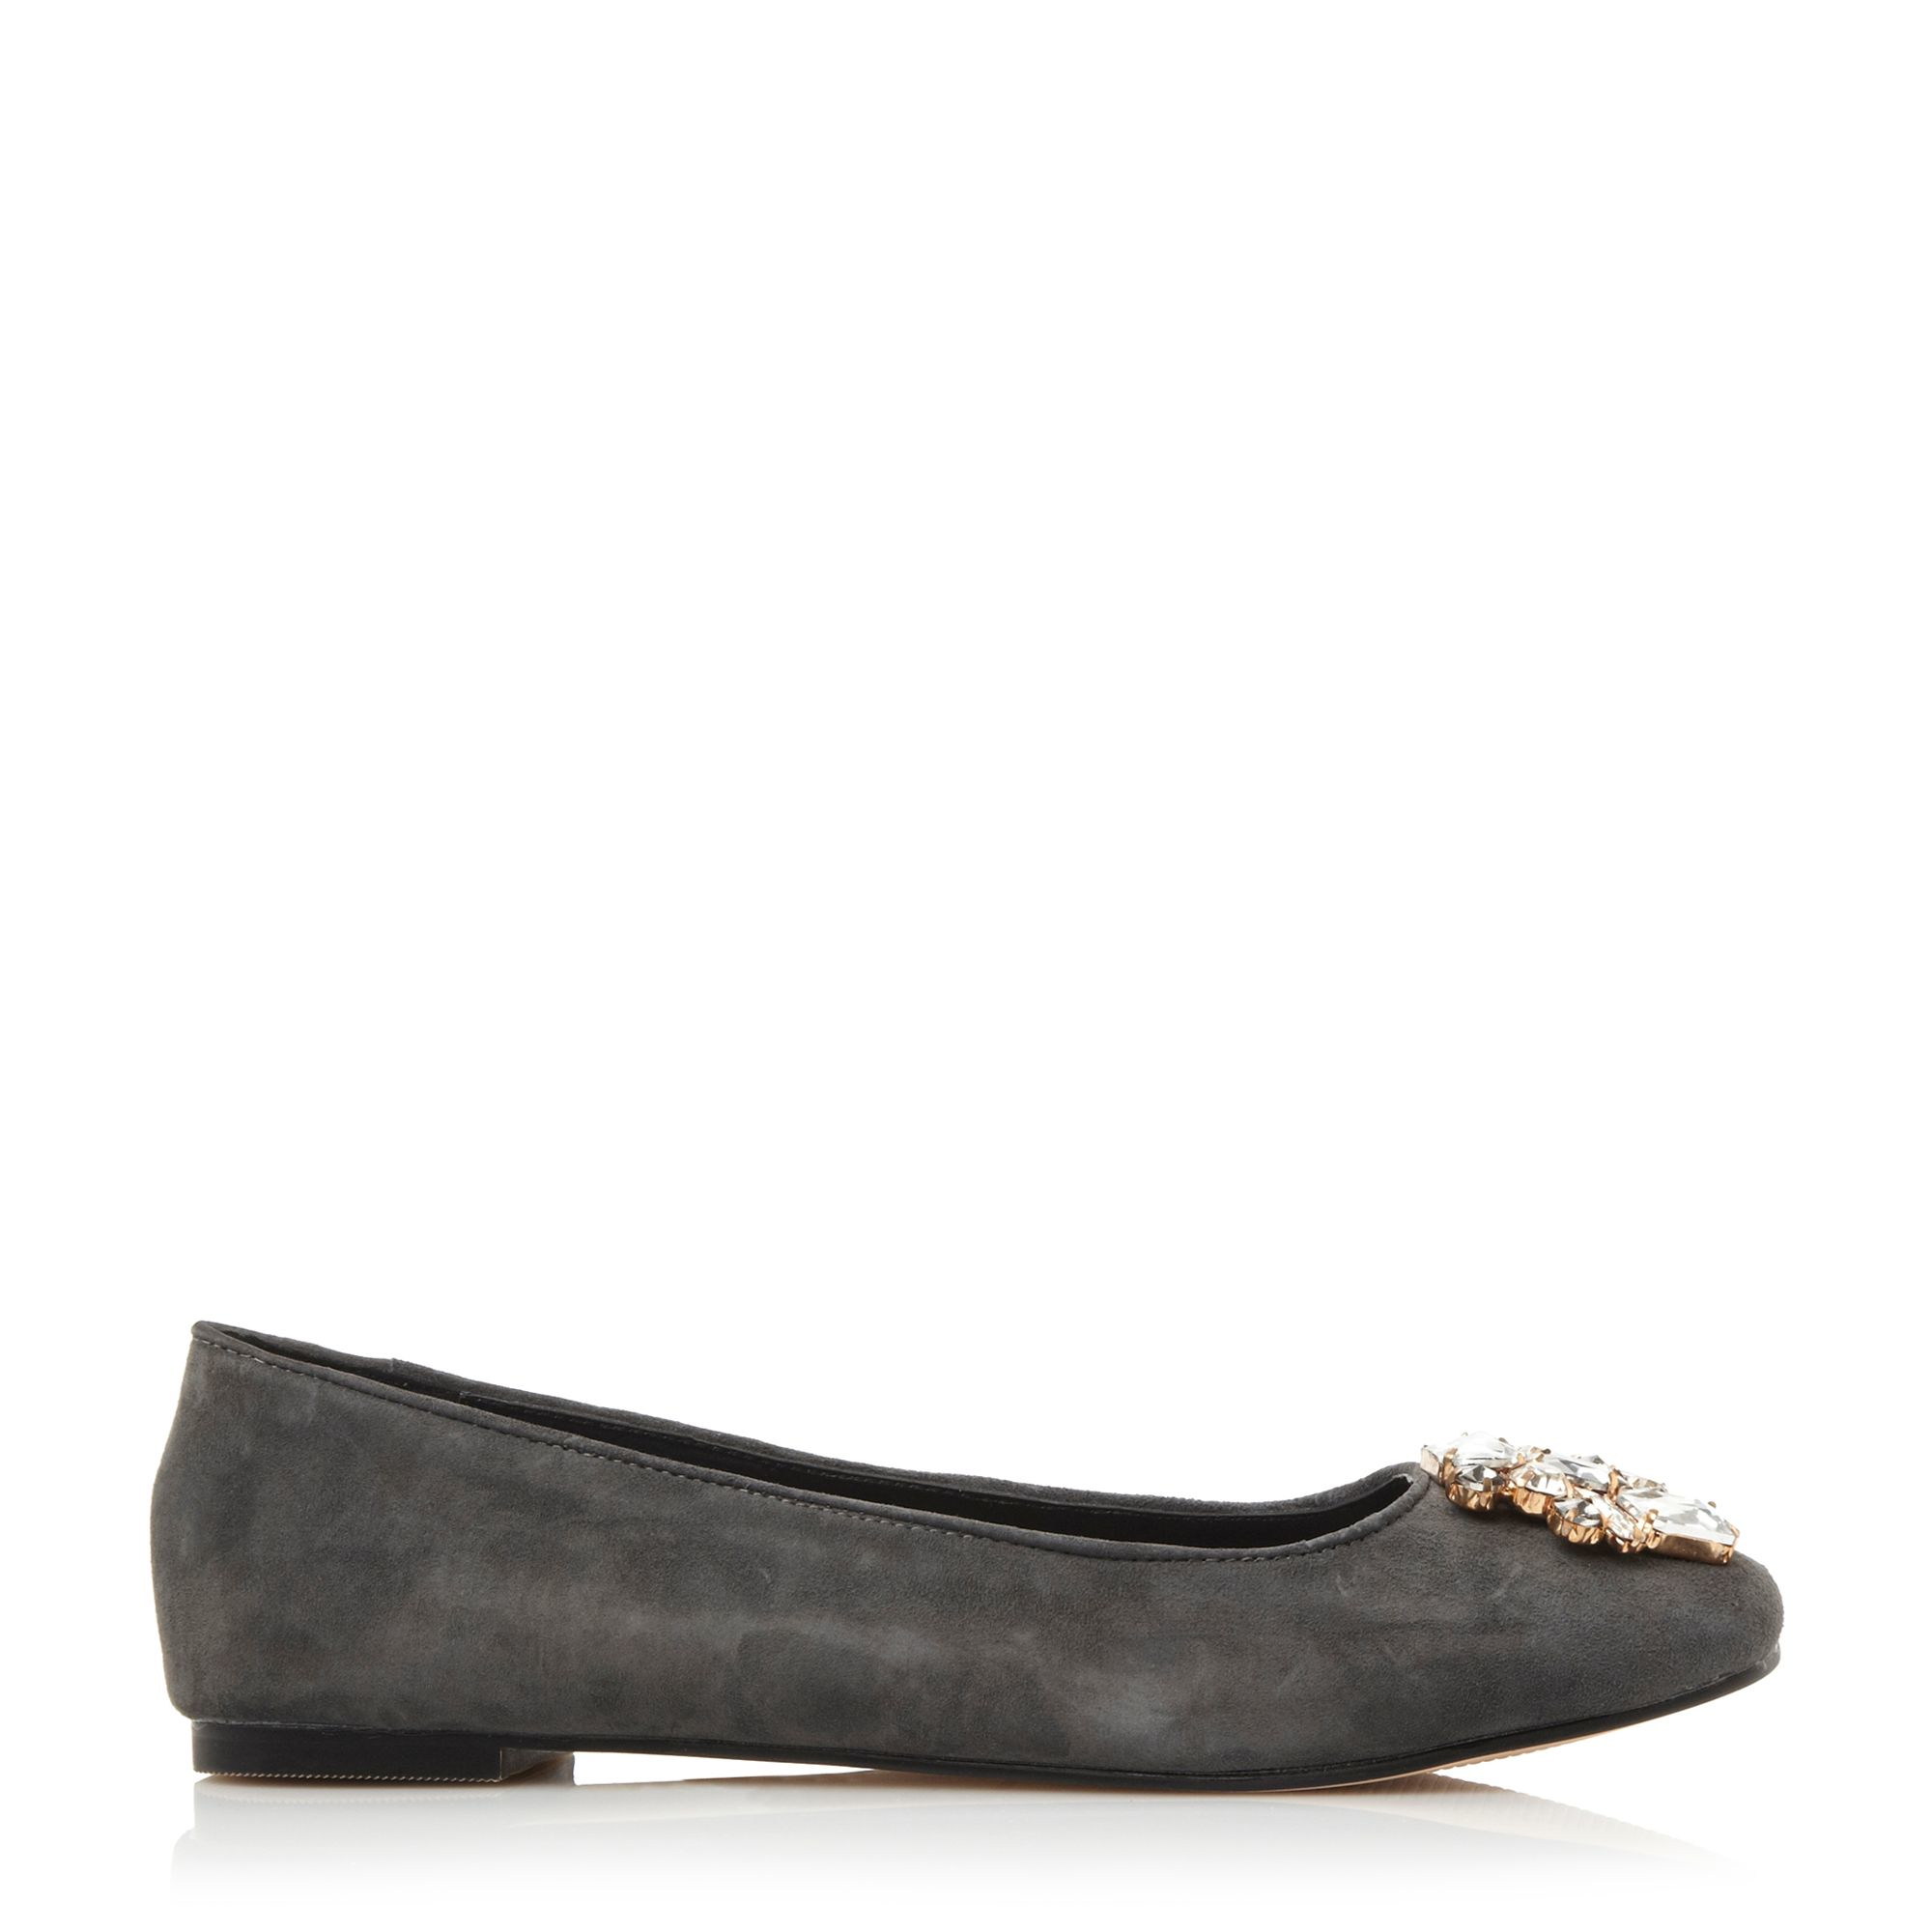 Dune Sale Flat Shoes